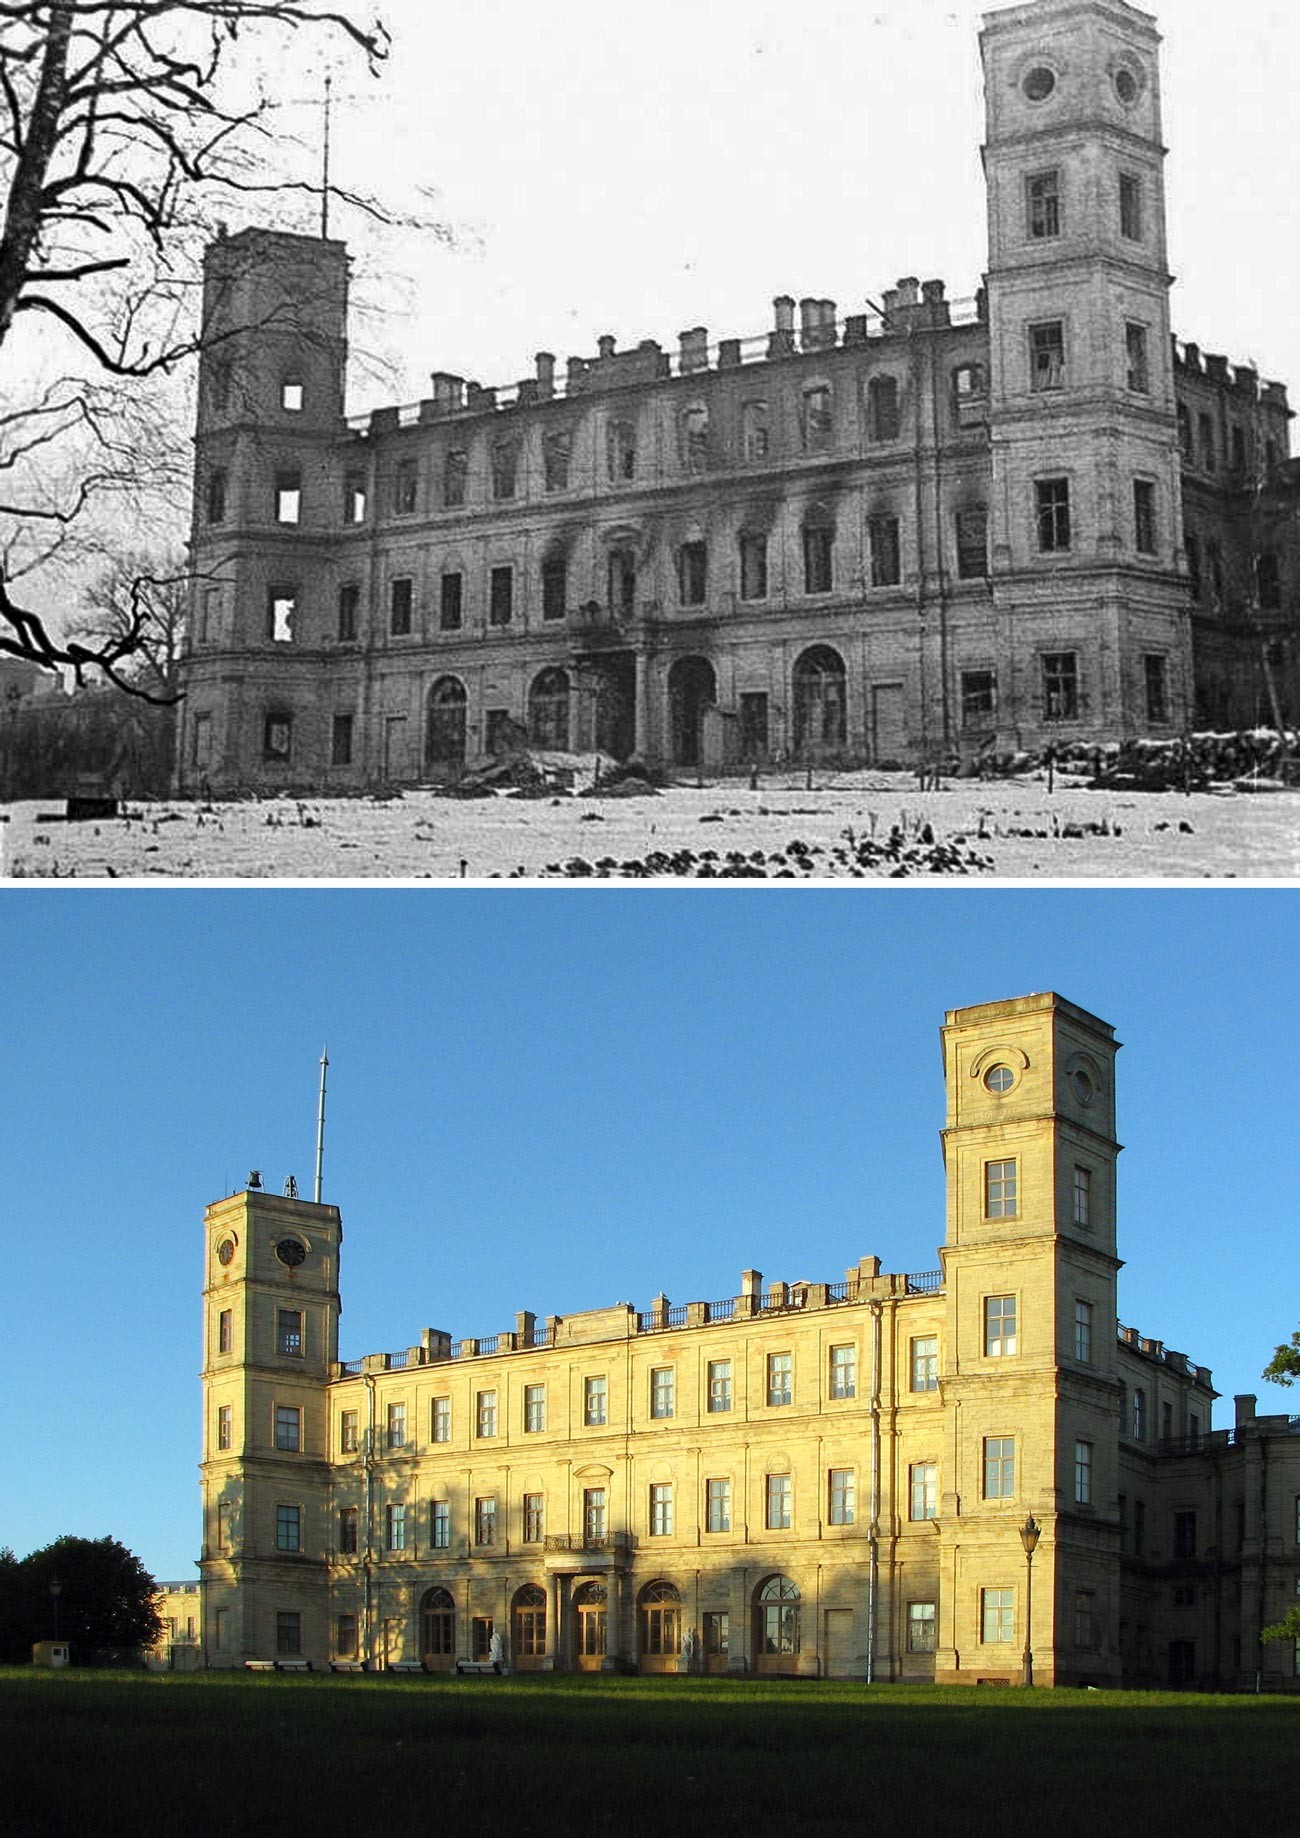 The northern façade of the palace in 1944 and now